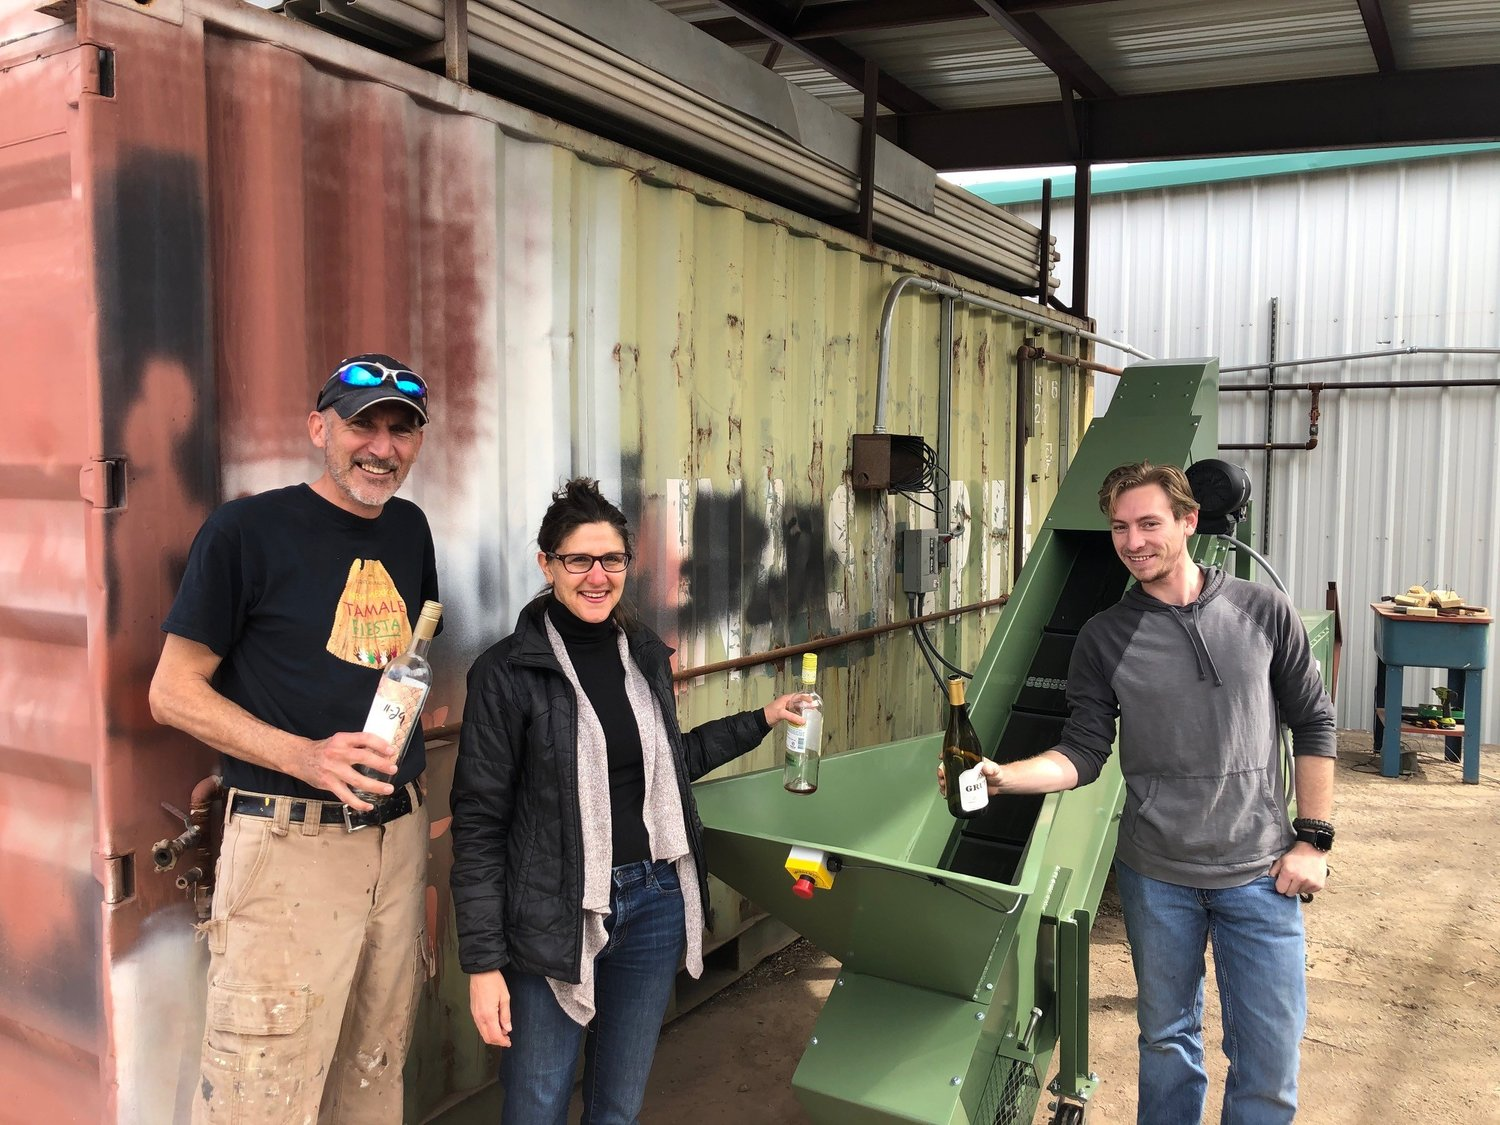 Trying out the new glass crusher in Silver City for the first time, organizers Chris Lemme, Alexandra Tager and Stephen Lindsey get ready to drop in their empty bottles.